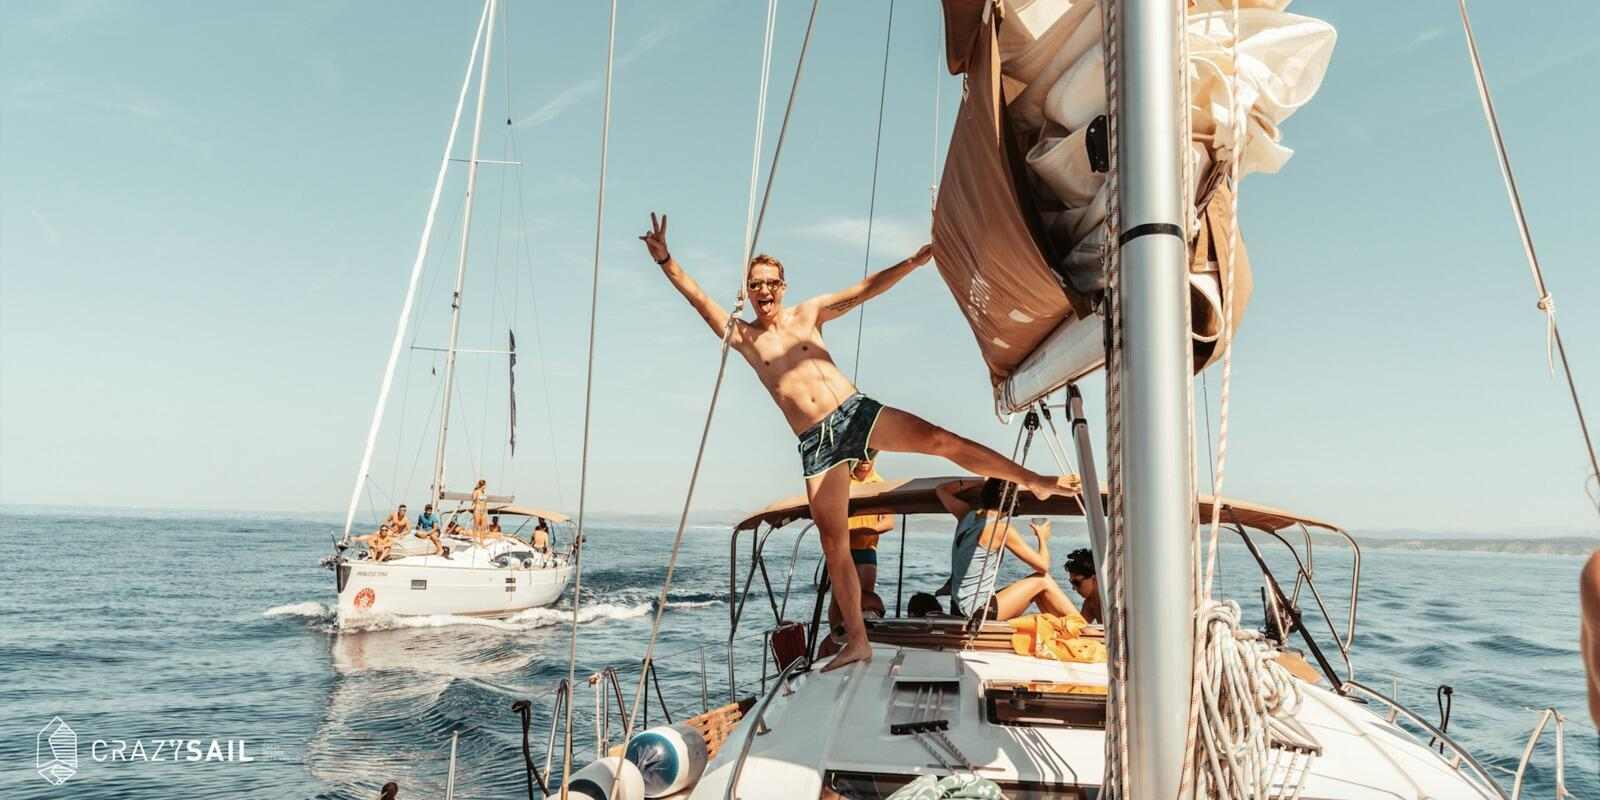 CRAZYSAIL GREECE - 4 boats to the Saronic islands